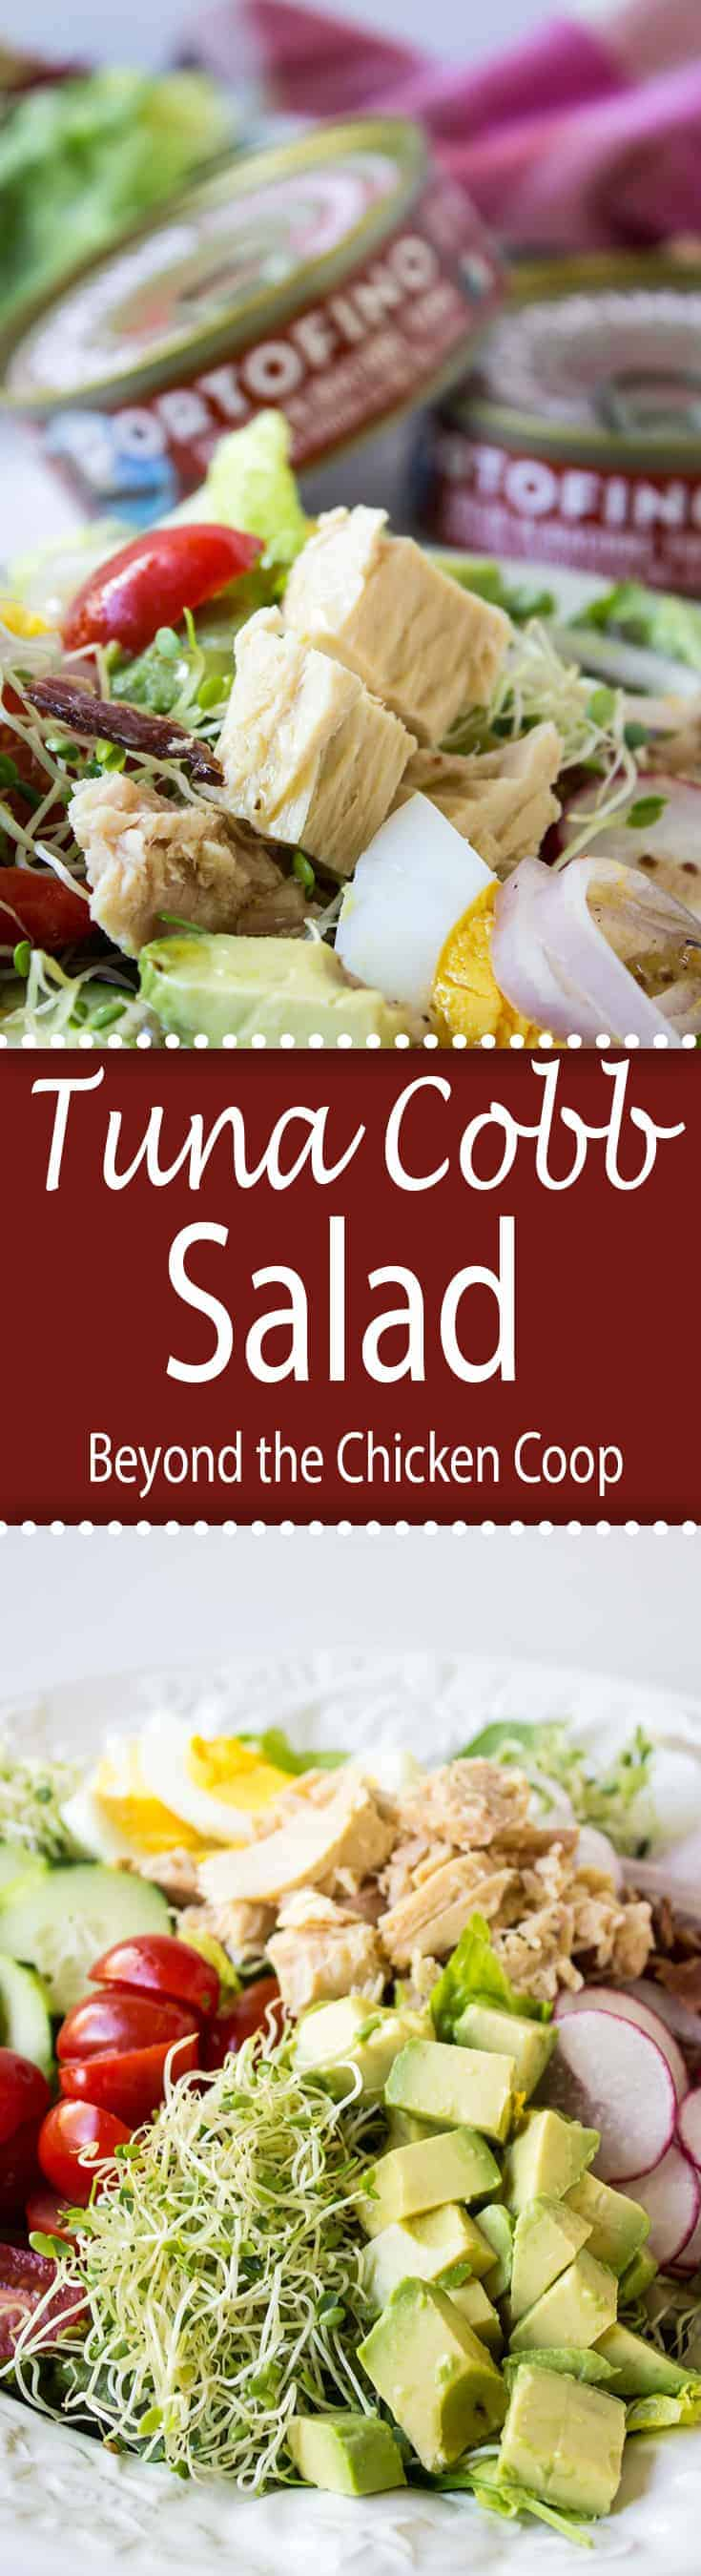 AD Tuna Cobb Salad made with Bella Portofino Tuna is perfect for lunch or dinner.   @bellaportofinotuna